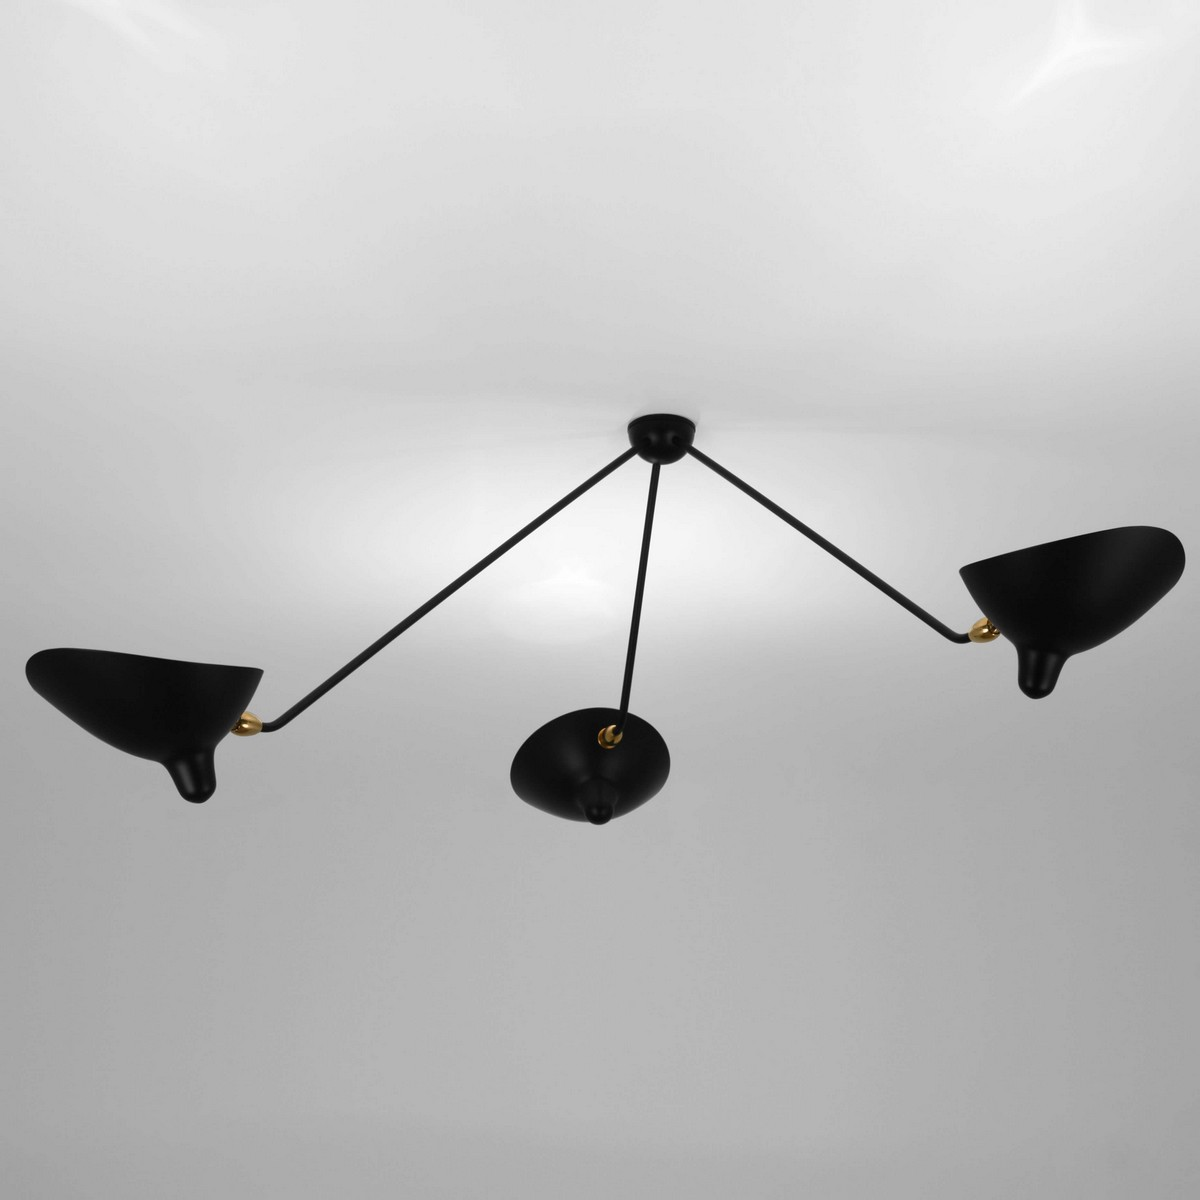 Arm Lamp Serge Mouille Spider Ceiling Lamp 3 Arms Mcl Sp3